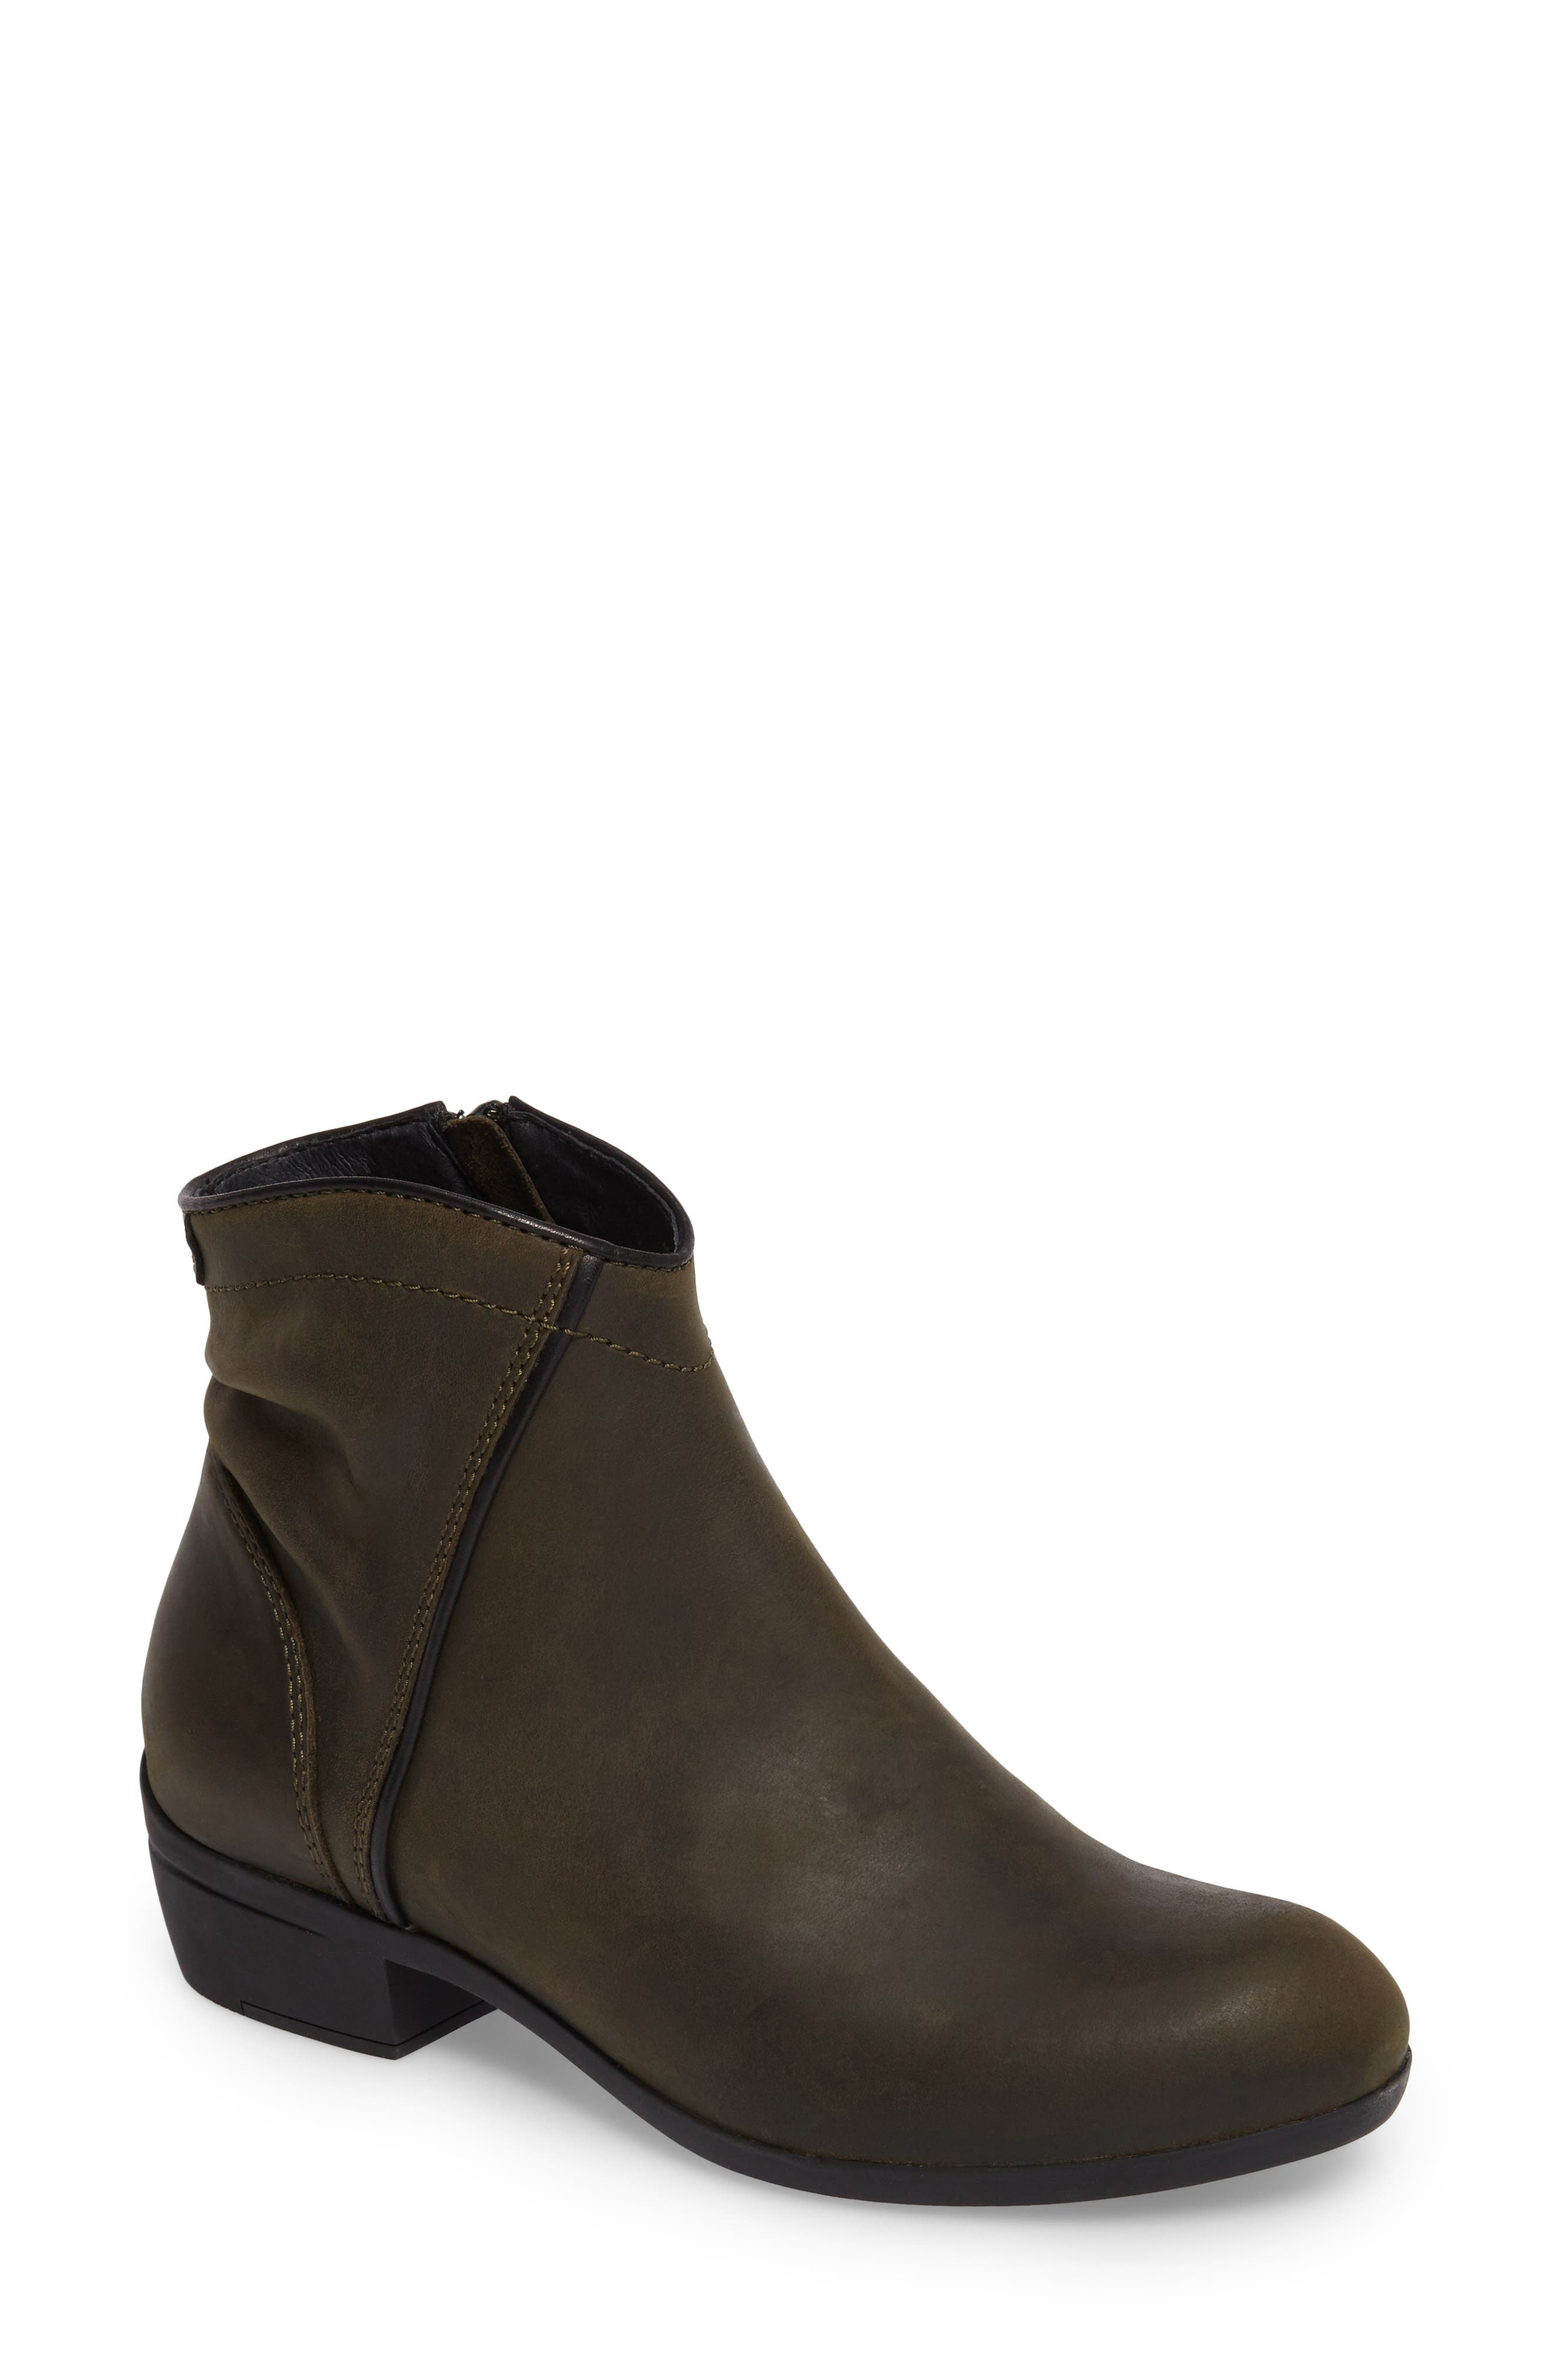 Winchester Bootie,                         Main,                         color, Forest Leather